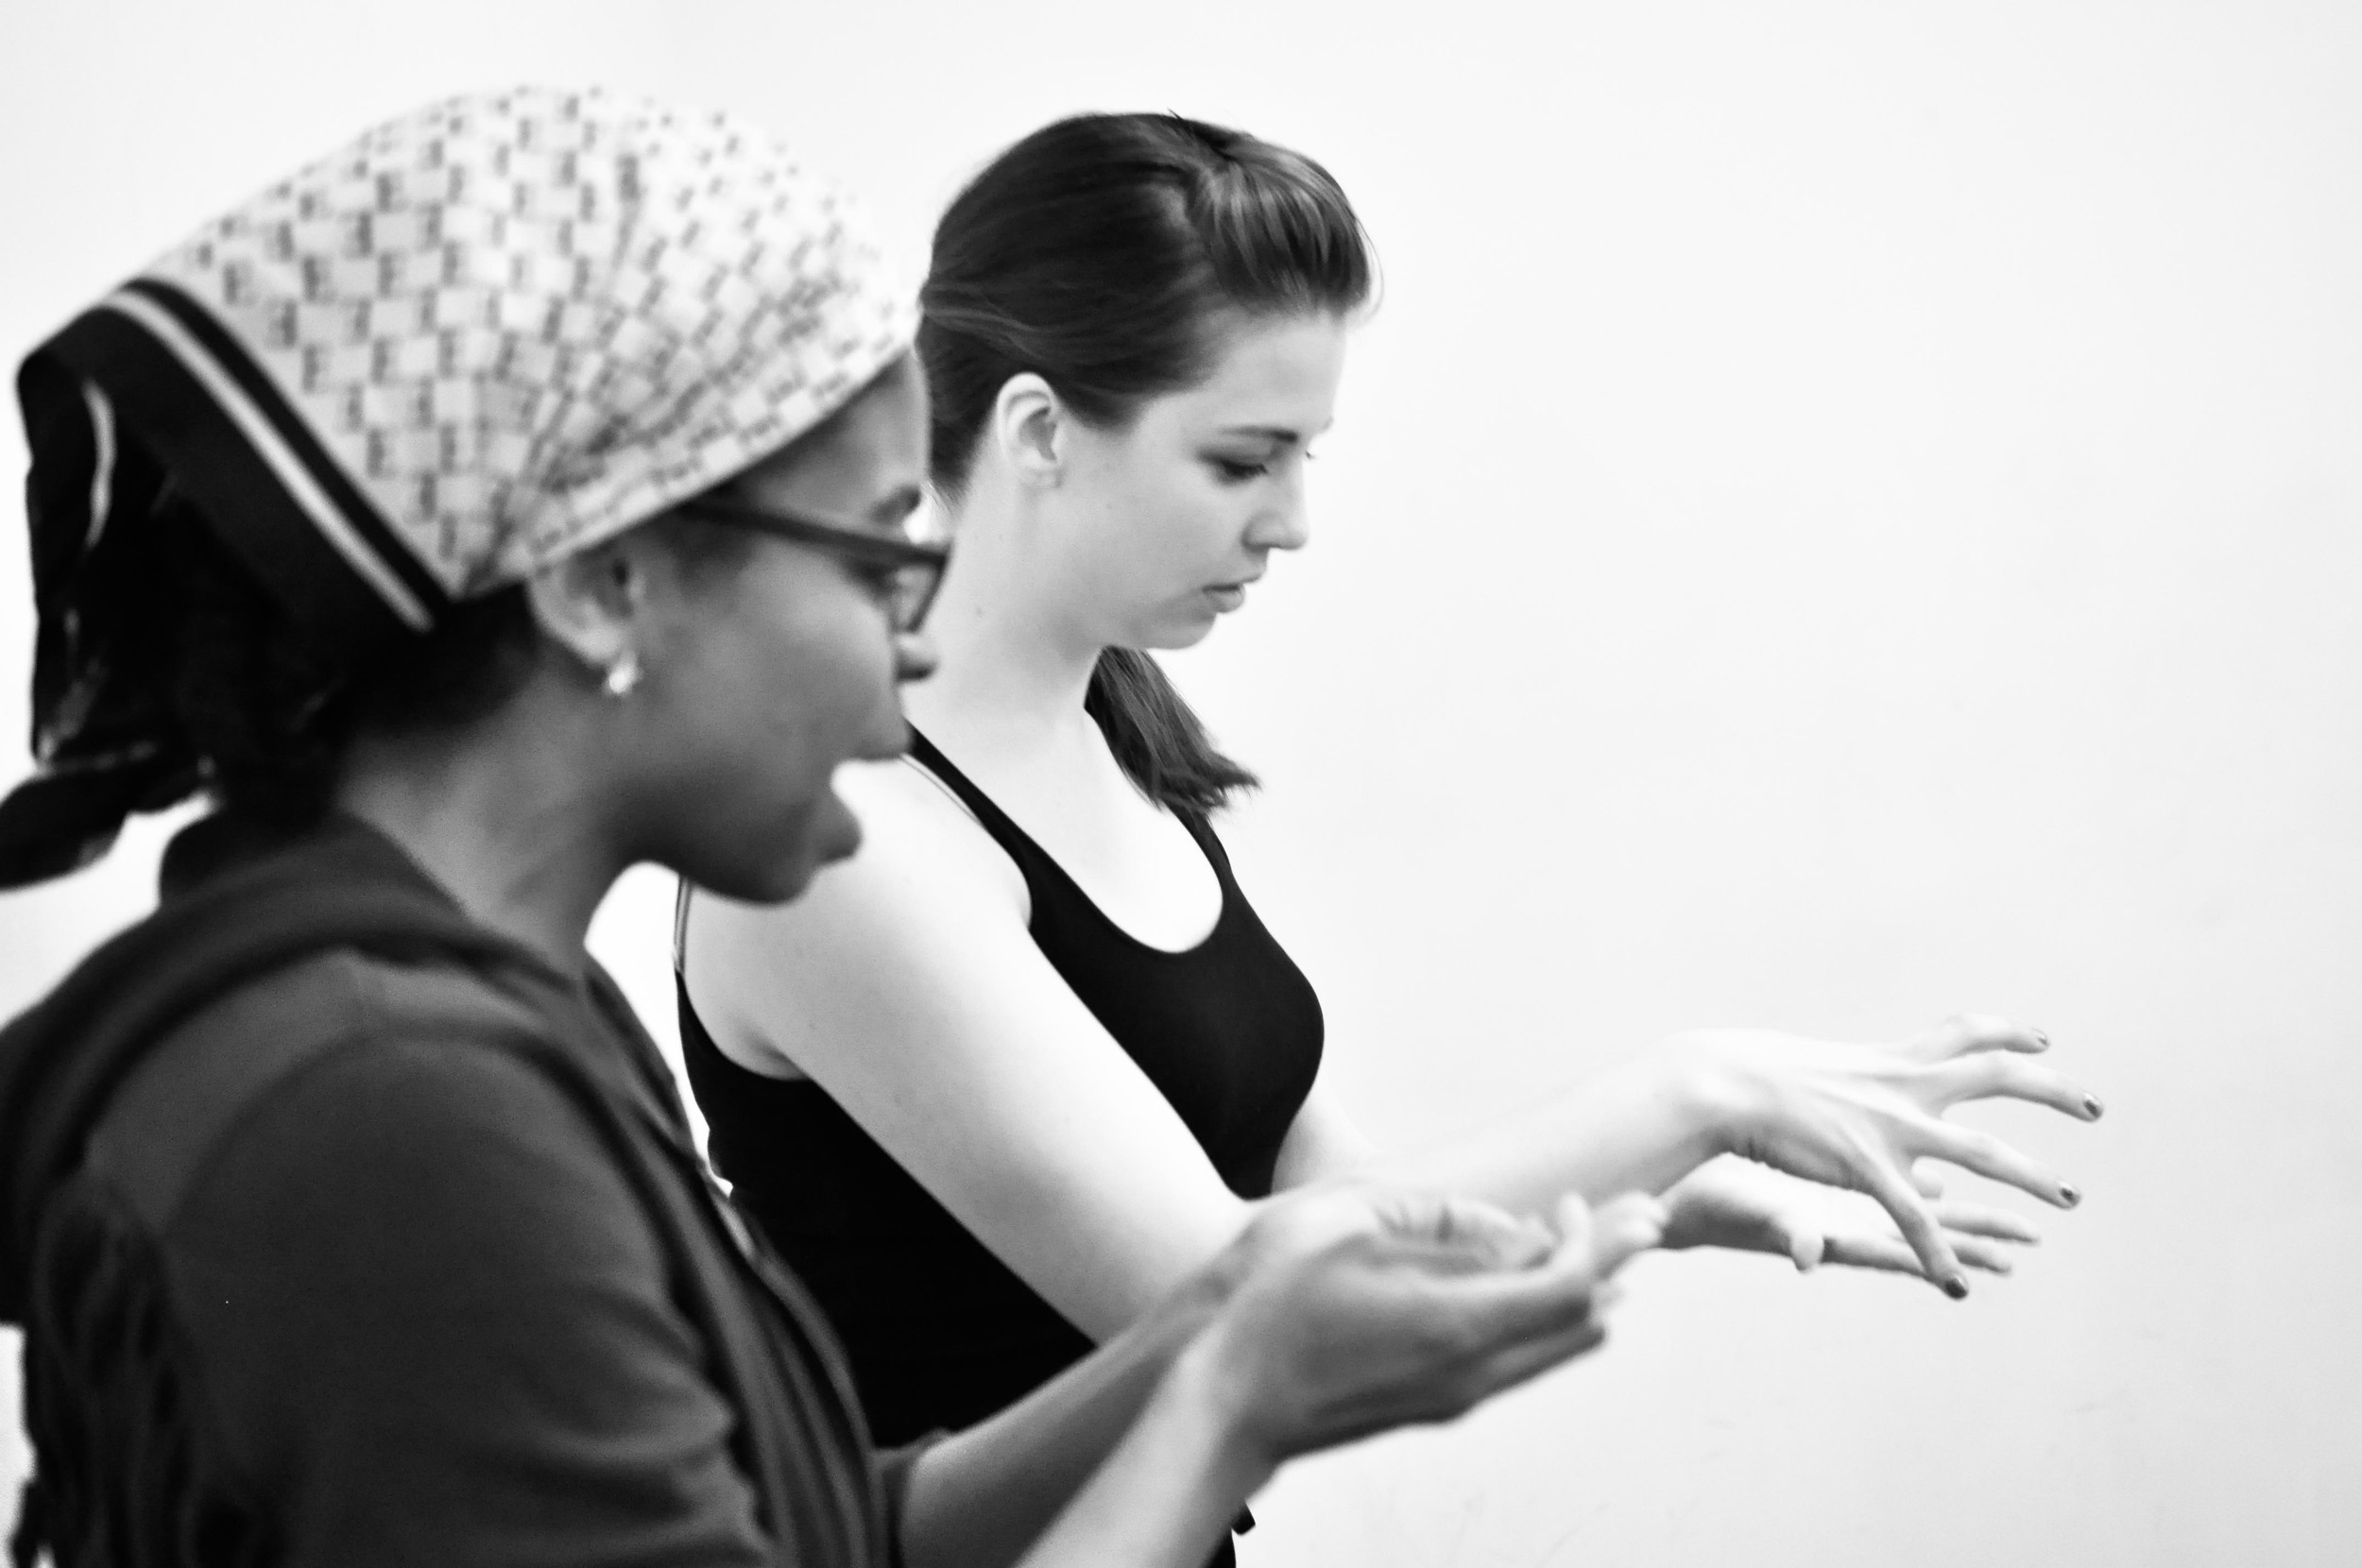 Alana and Lizzy in Rehearsal